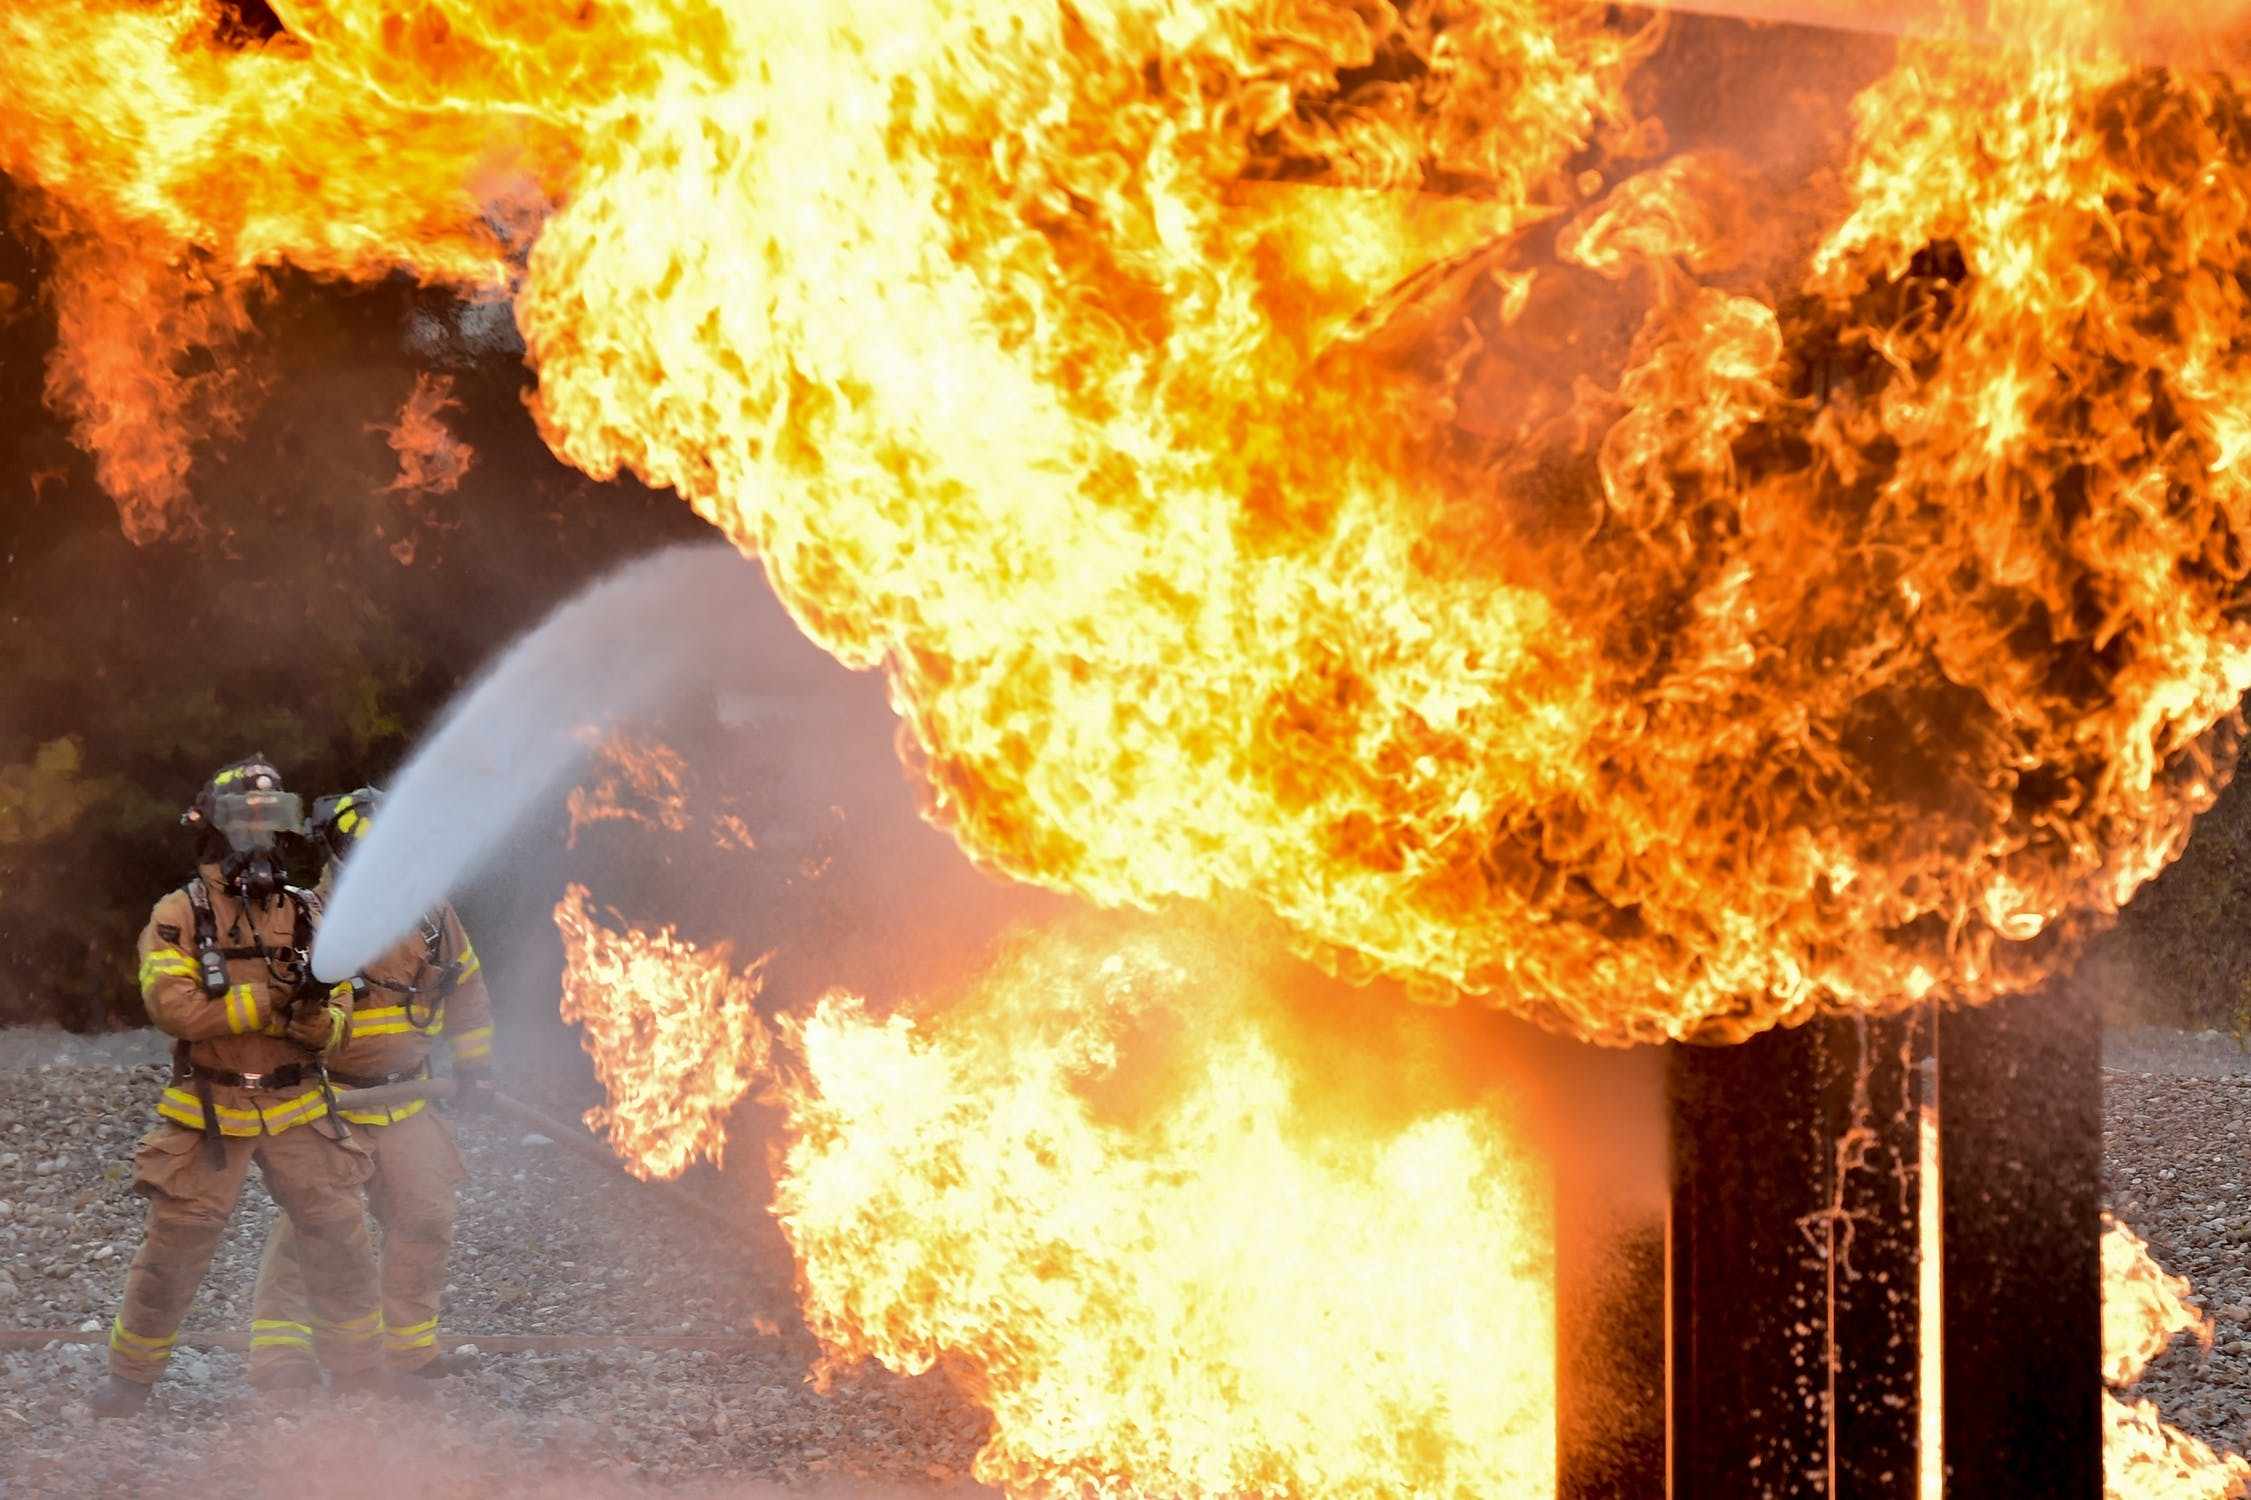 Rockton, Illinois Chemtool Fire Continues Burning; Evacuation Order Remains in Effect